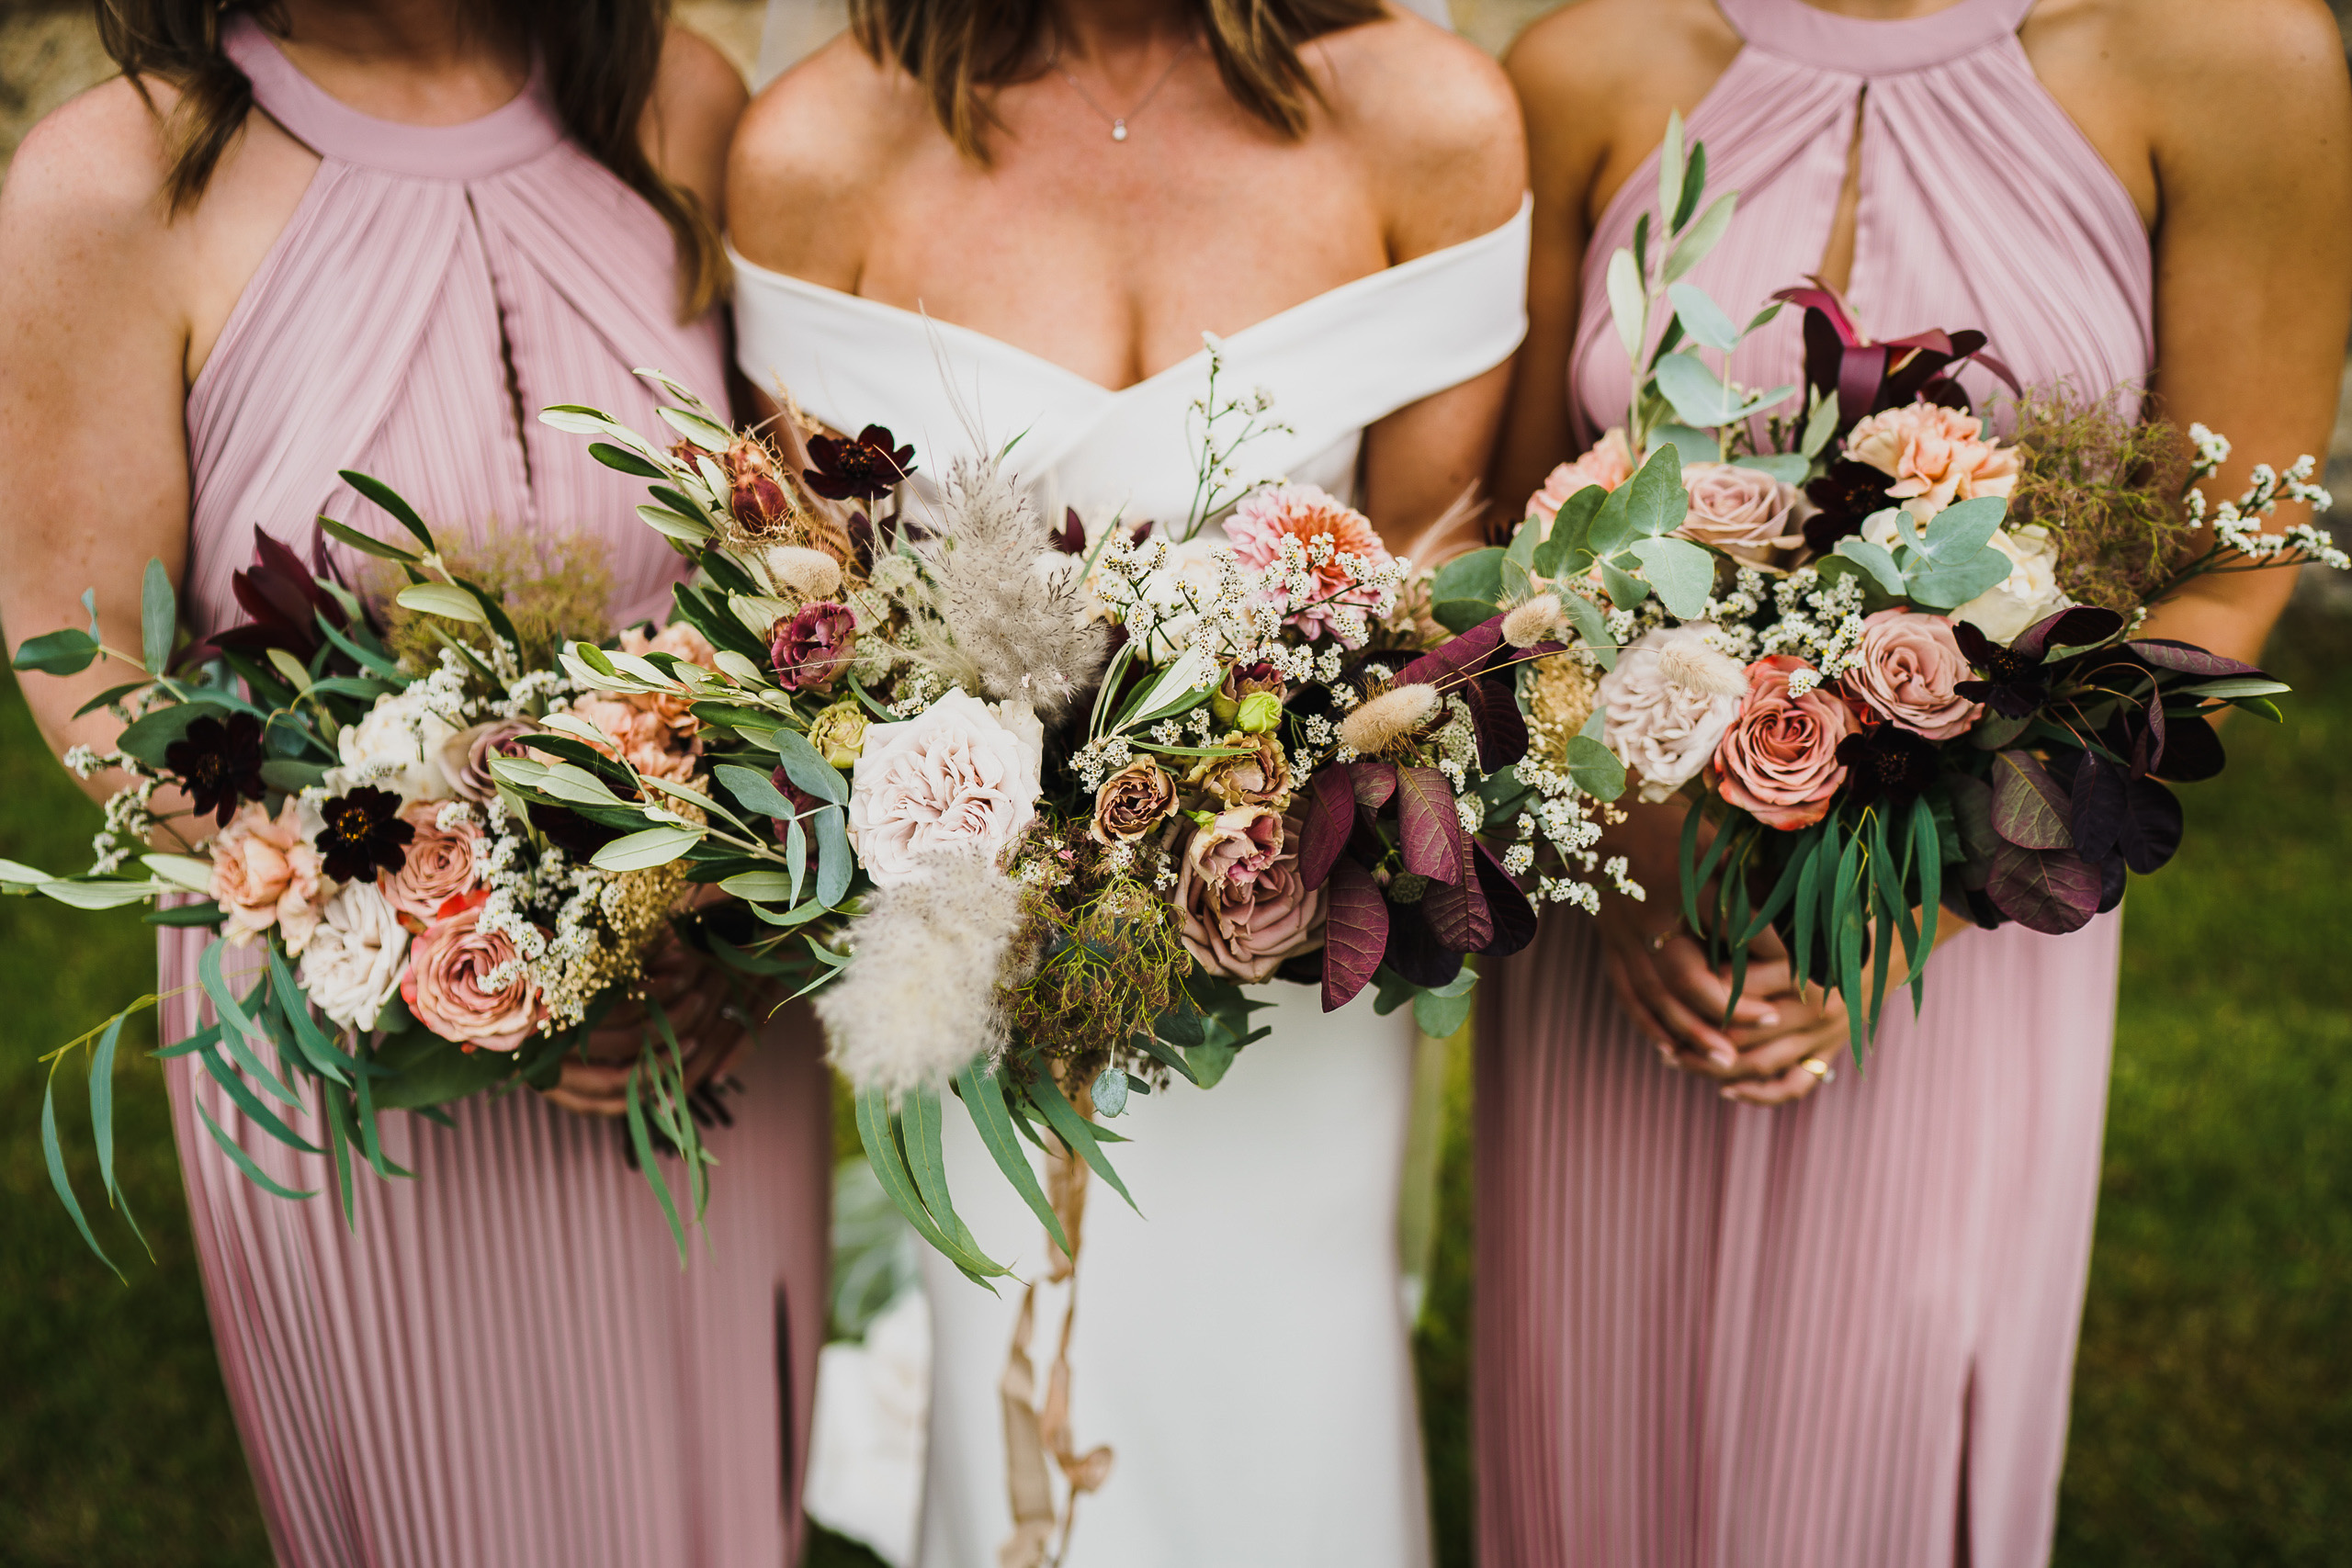 wedding bouquets and bridesmaids at Voewood near Holt.